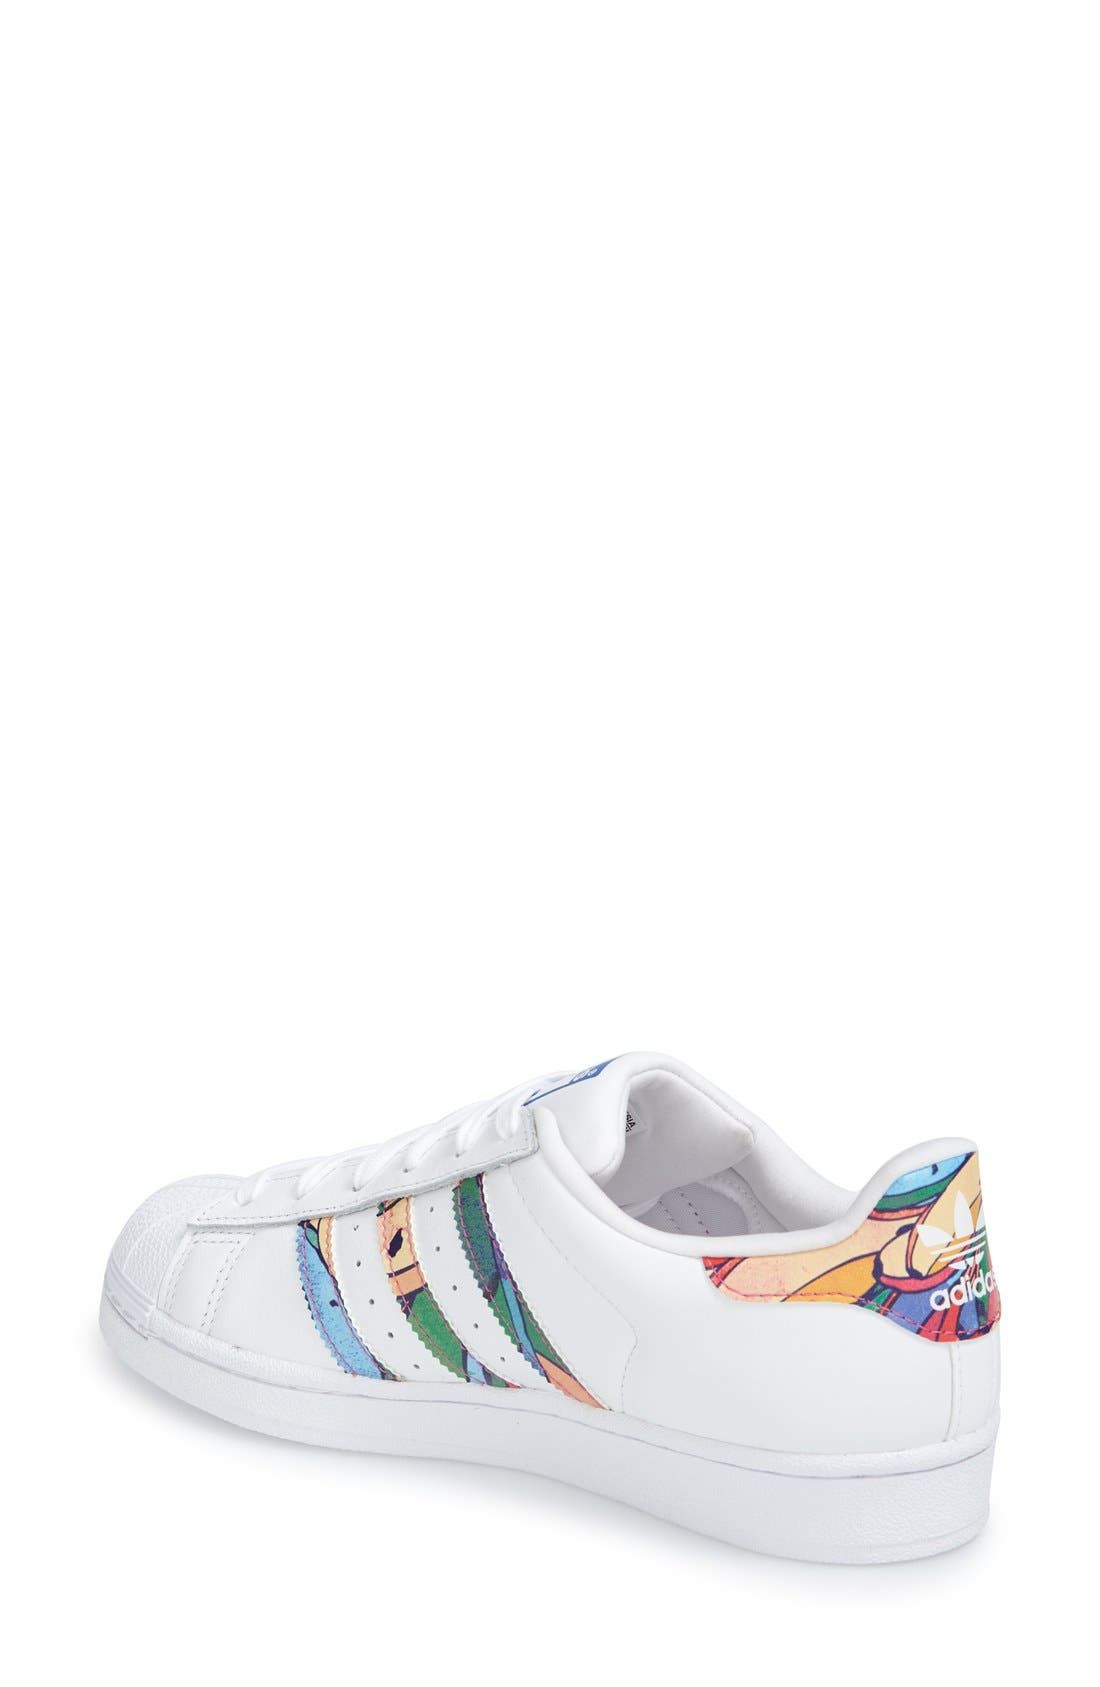 Alternate Image 2  - adidas 'Superstar' Print Sneaker (Women)